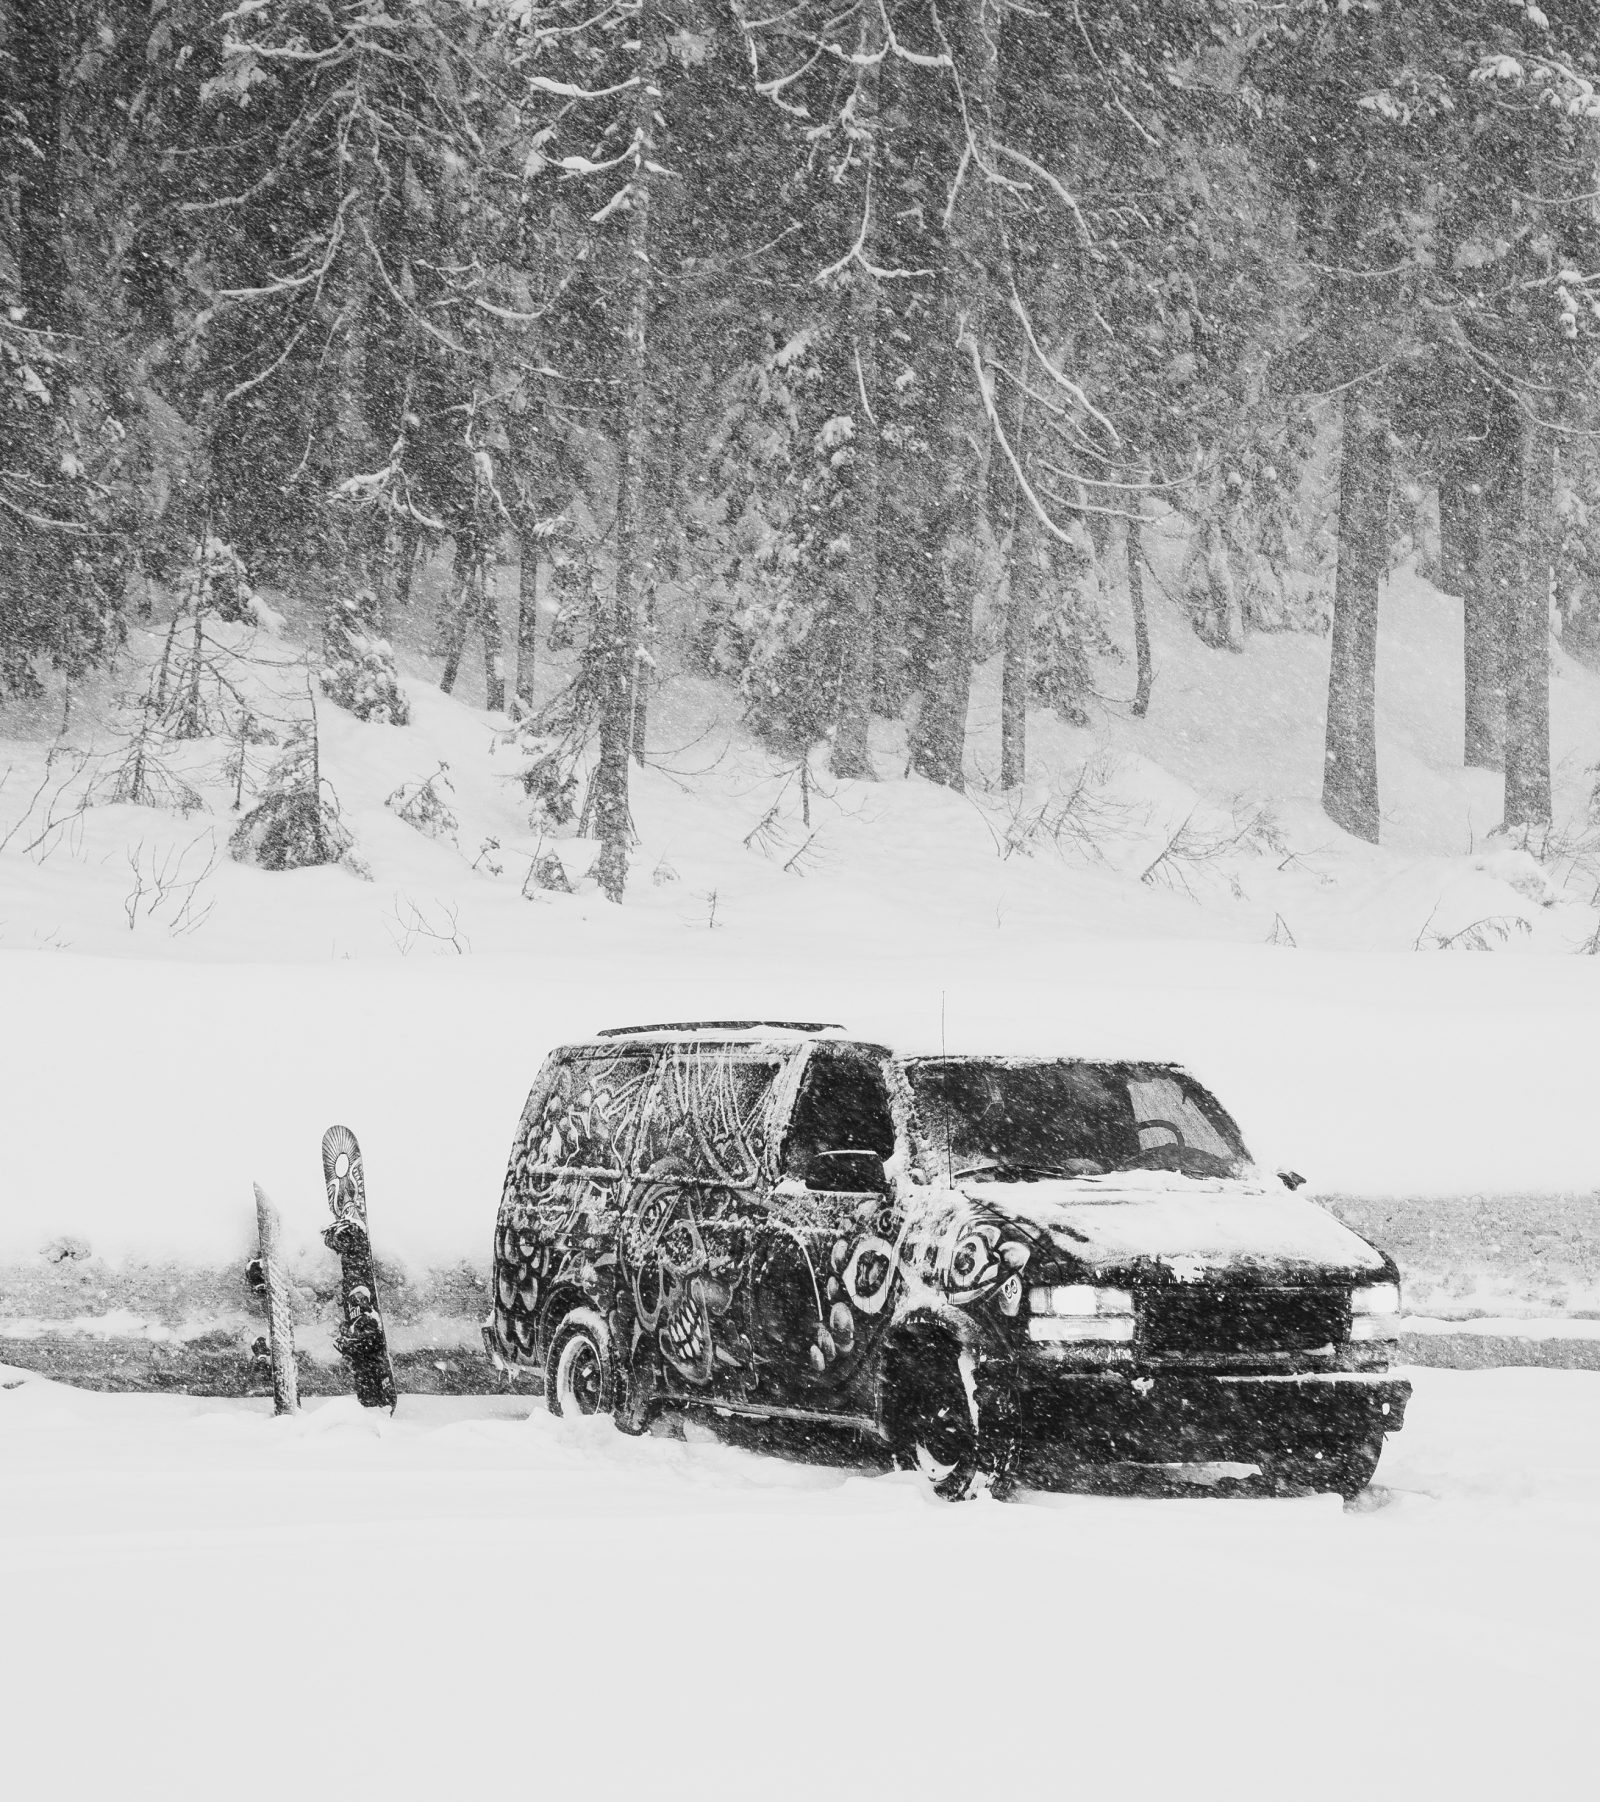 Adventure Van In Extreme Snow Storm